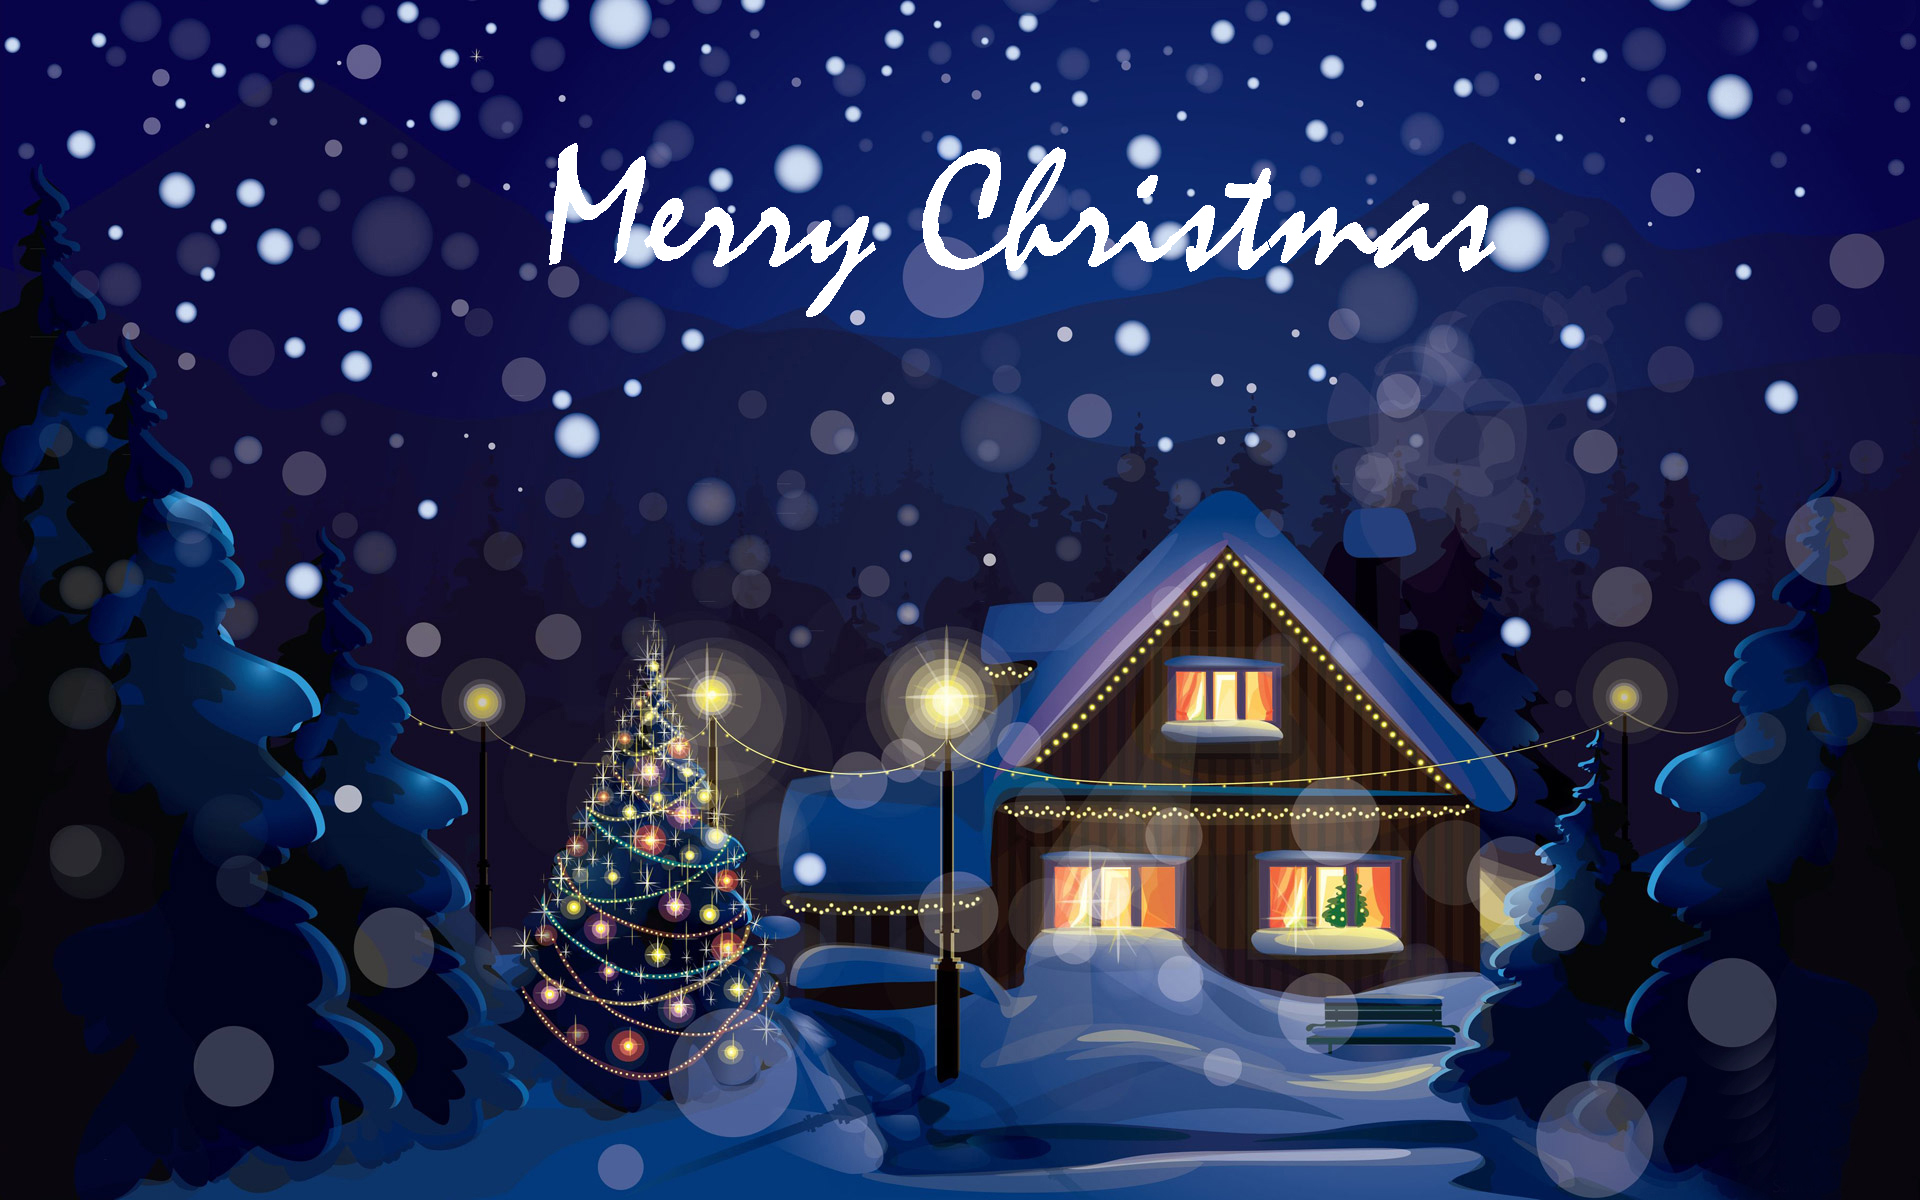 Happy Christmas HD wallpaper for download